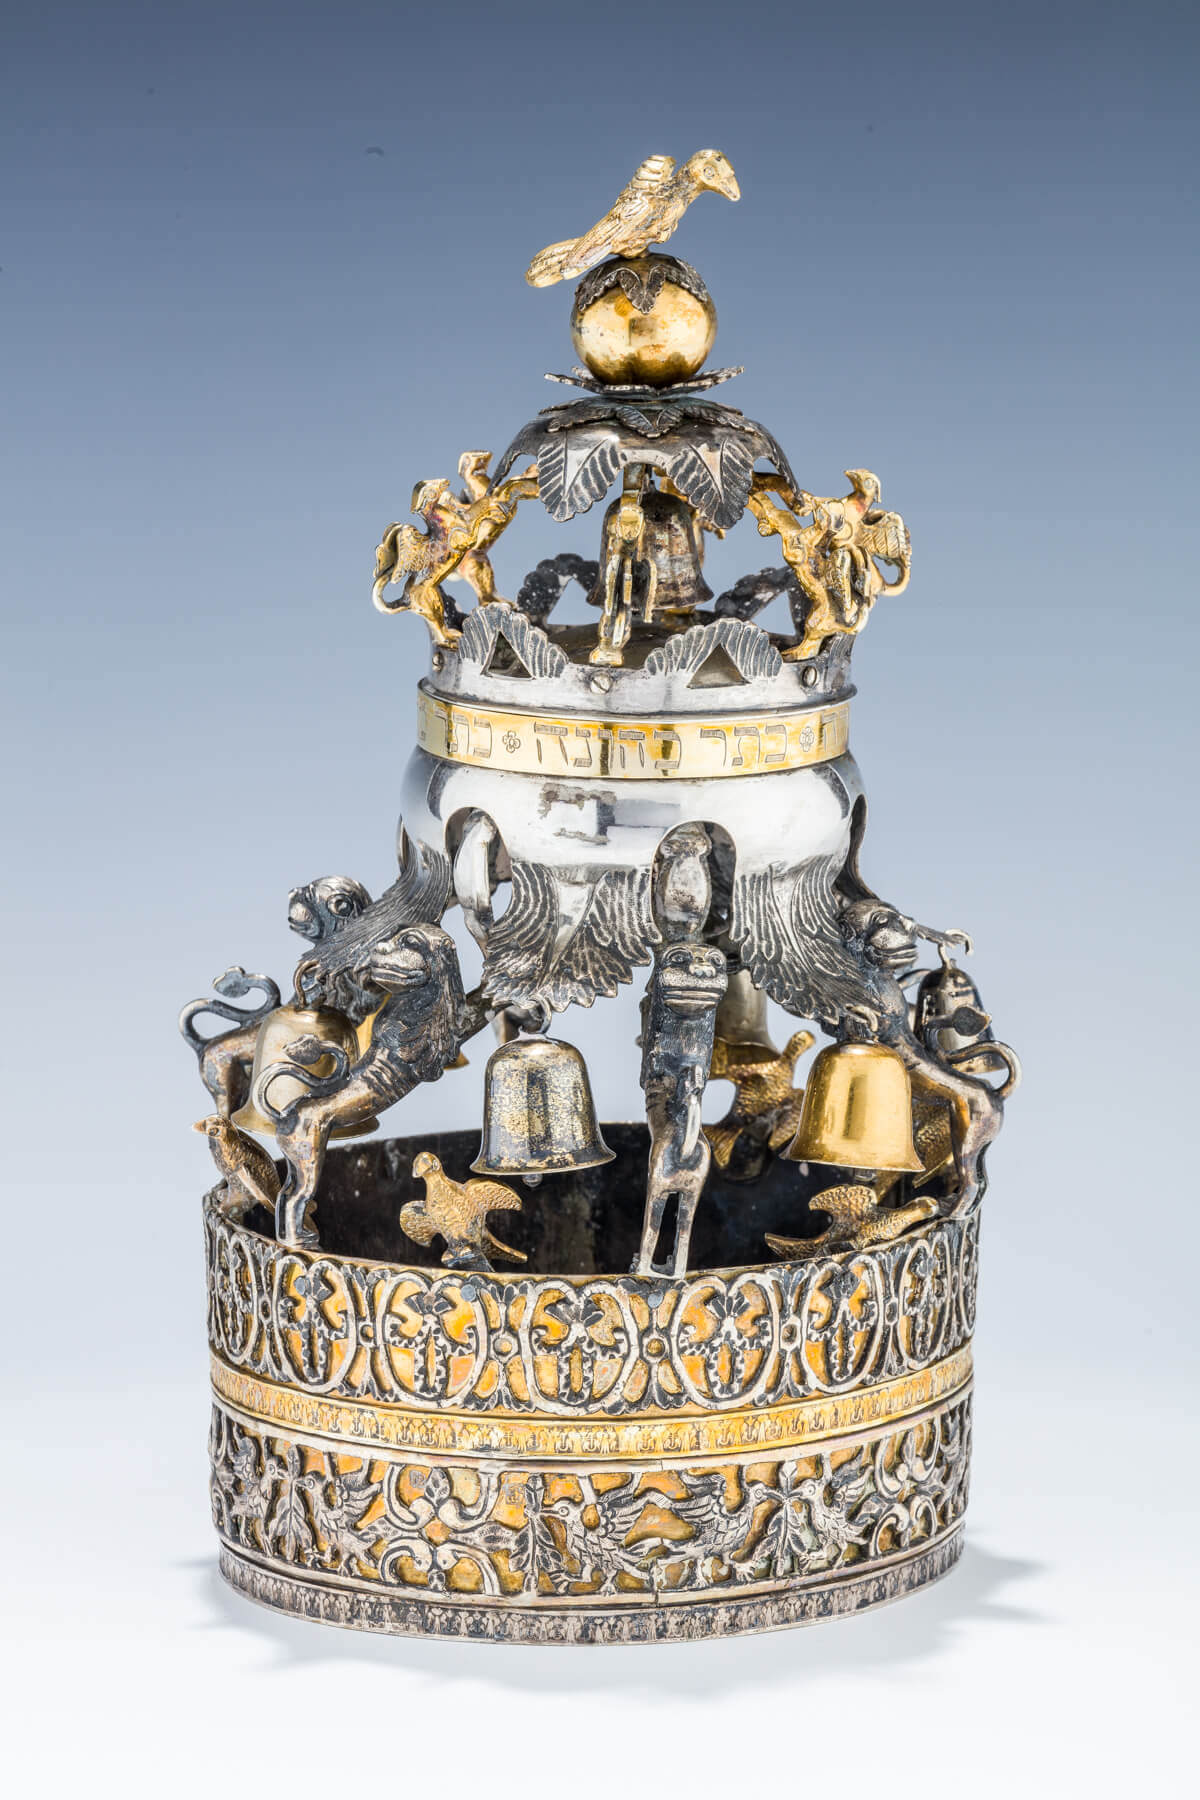 110. A RARE AND IMPORTANT GALICIAN SILVER TORAH CROWN